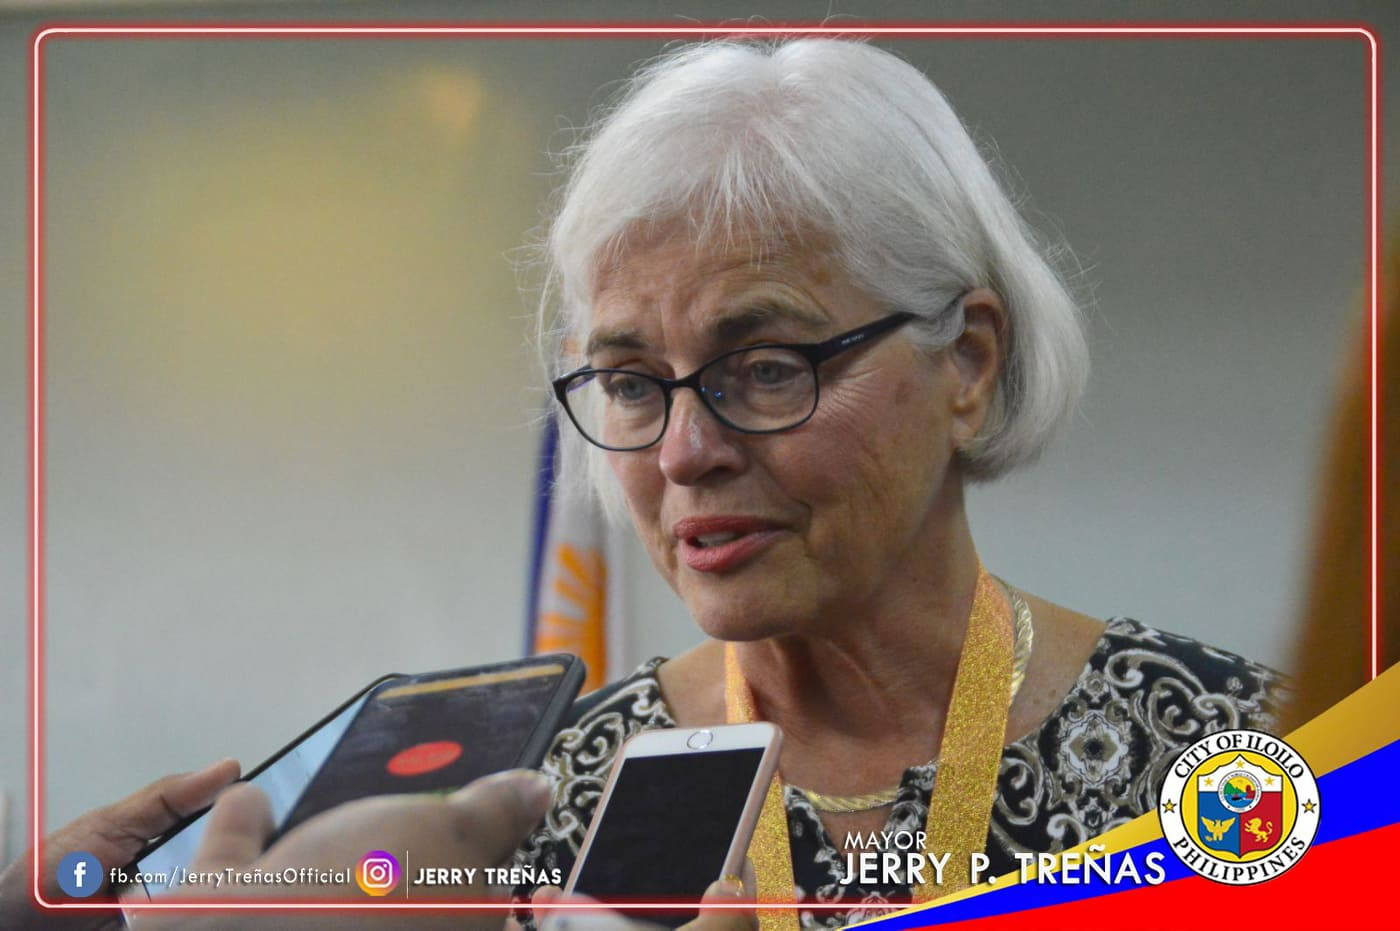 The city has in fact received commendations from the Dutch Ambassador H.E. Saskia Elisabeth De Langsaw during her visit to Iloilo City